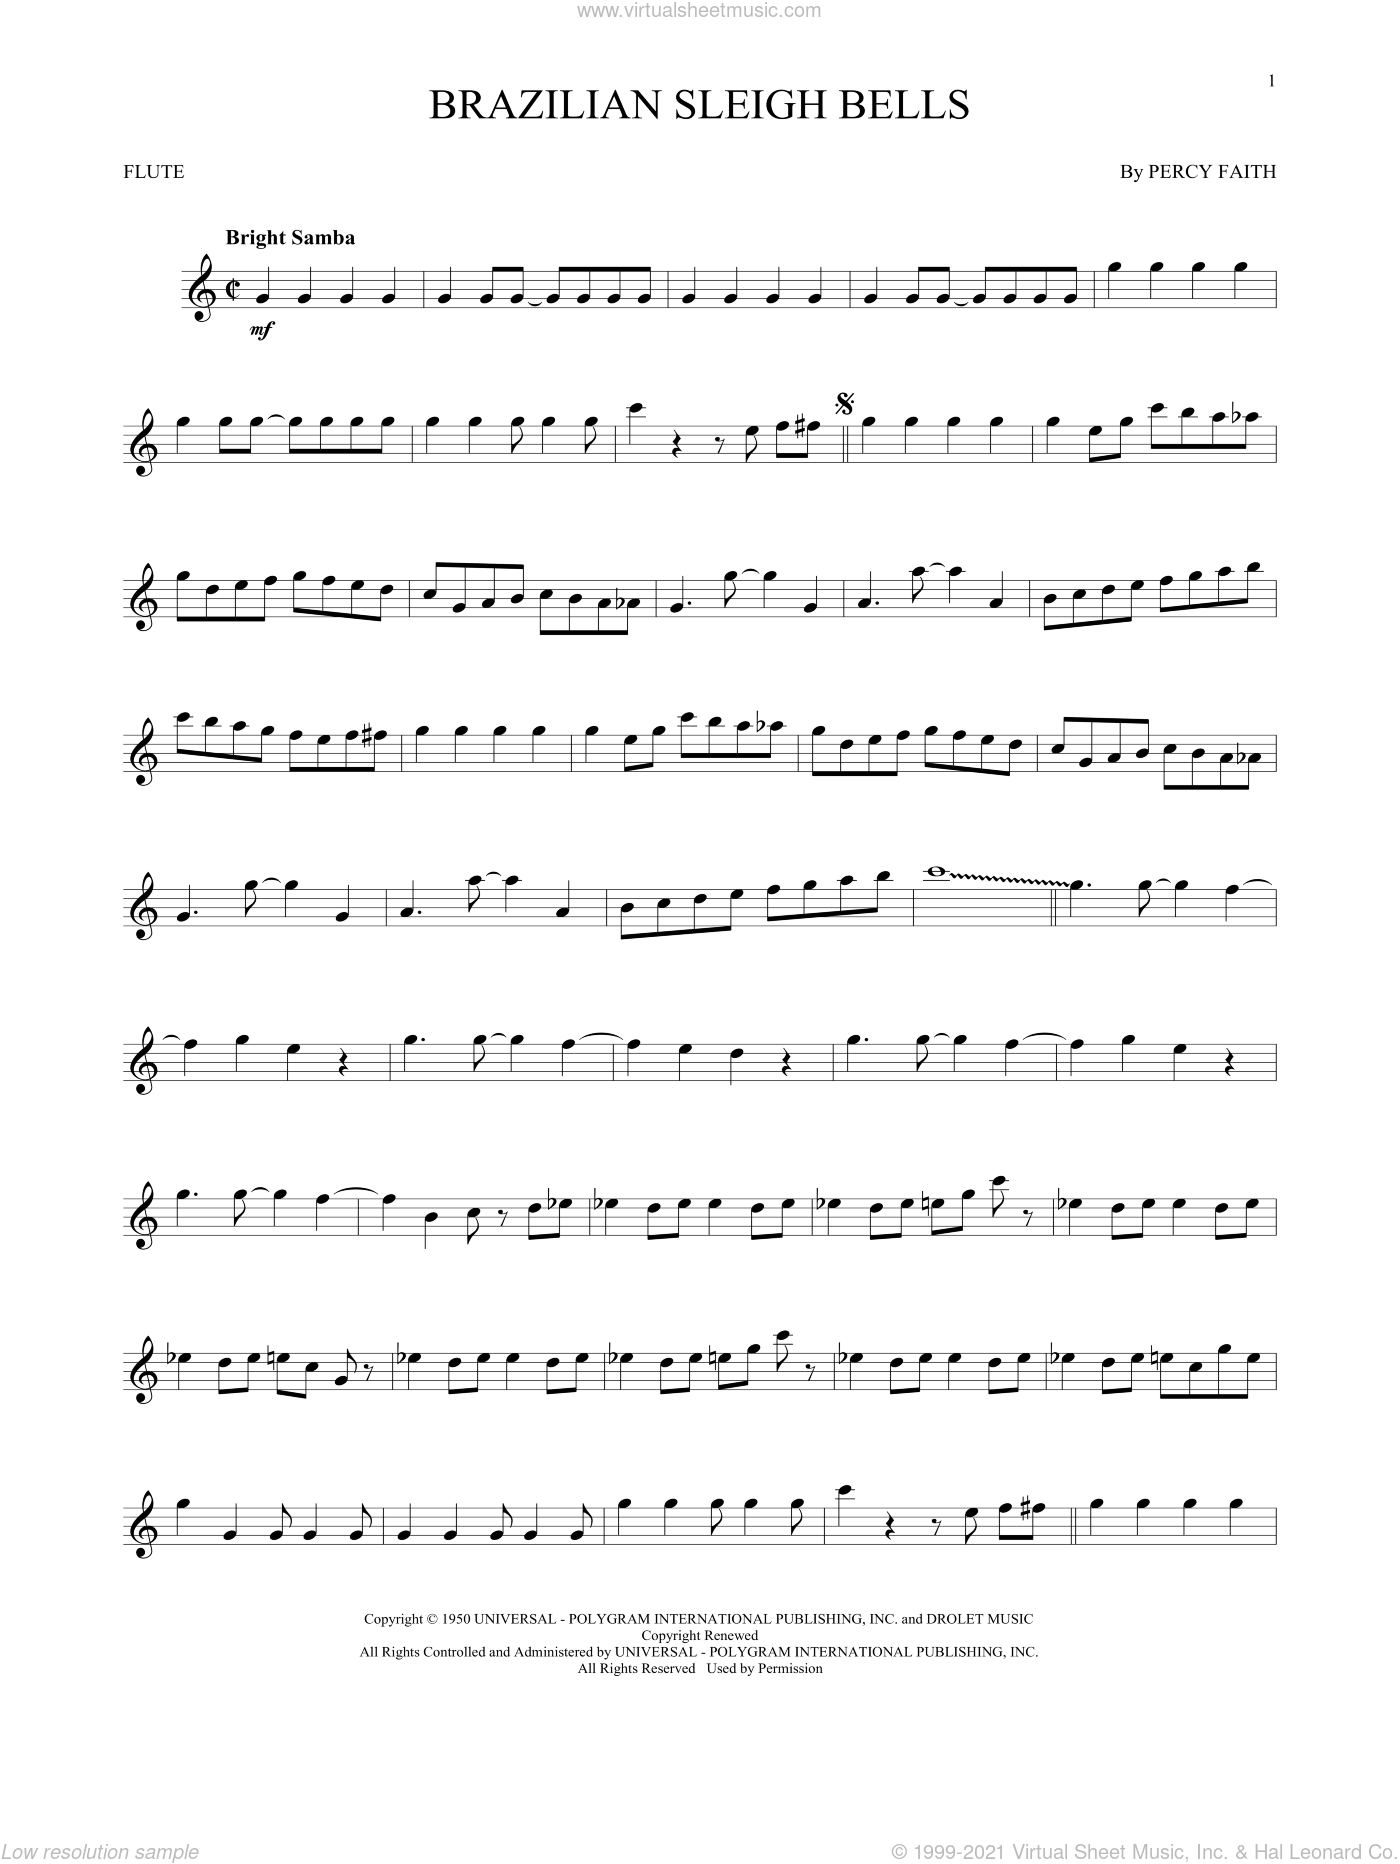 Brazilian Sleigh Bells sheet music for flute solo by Percy Faith